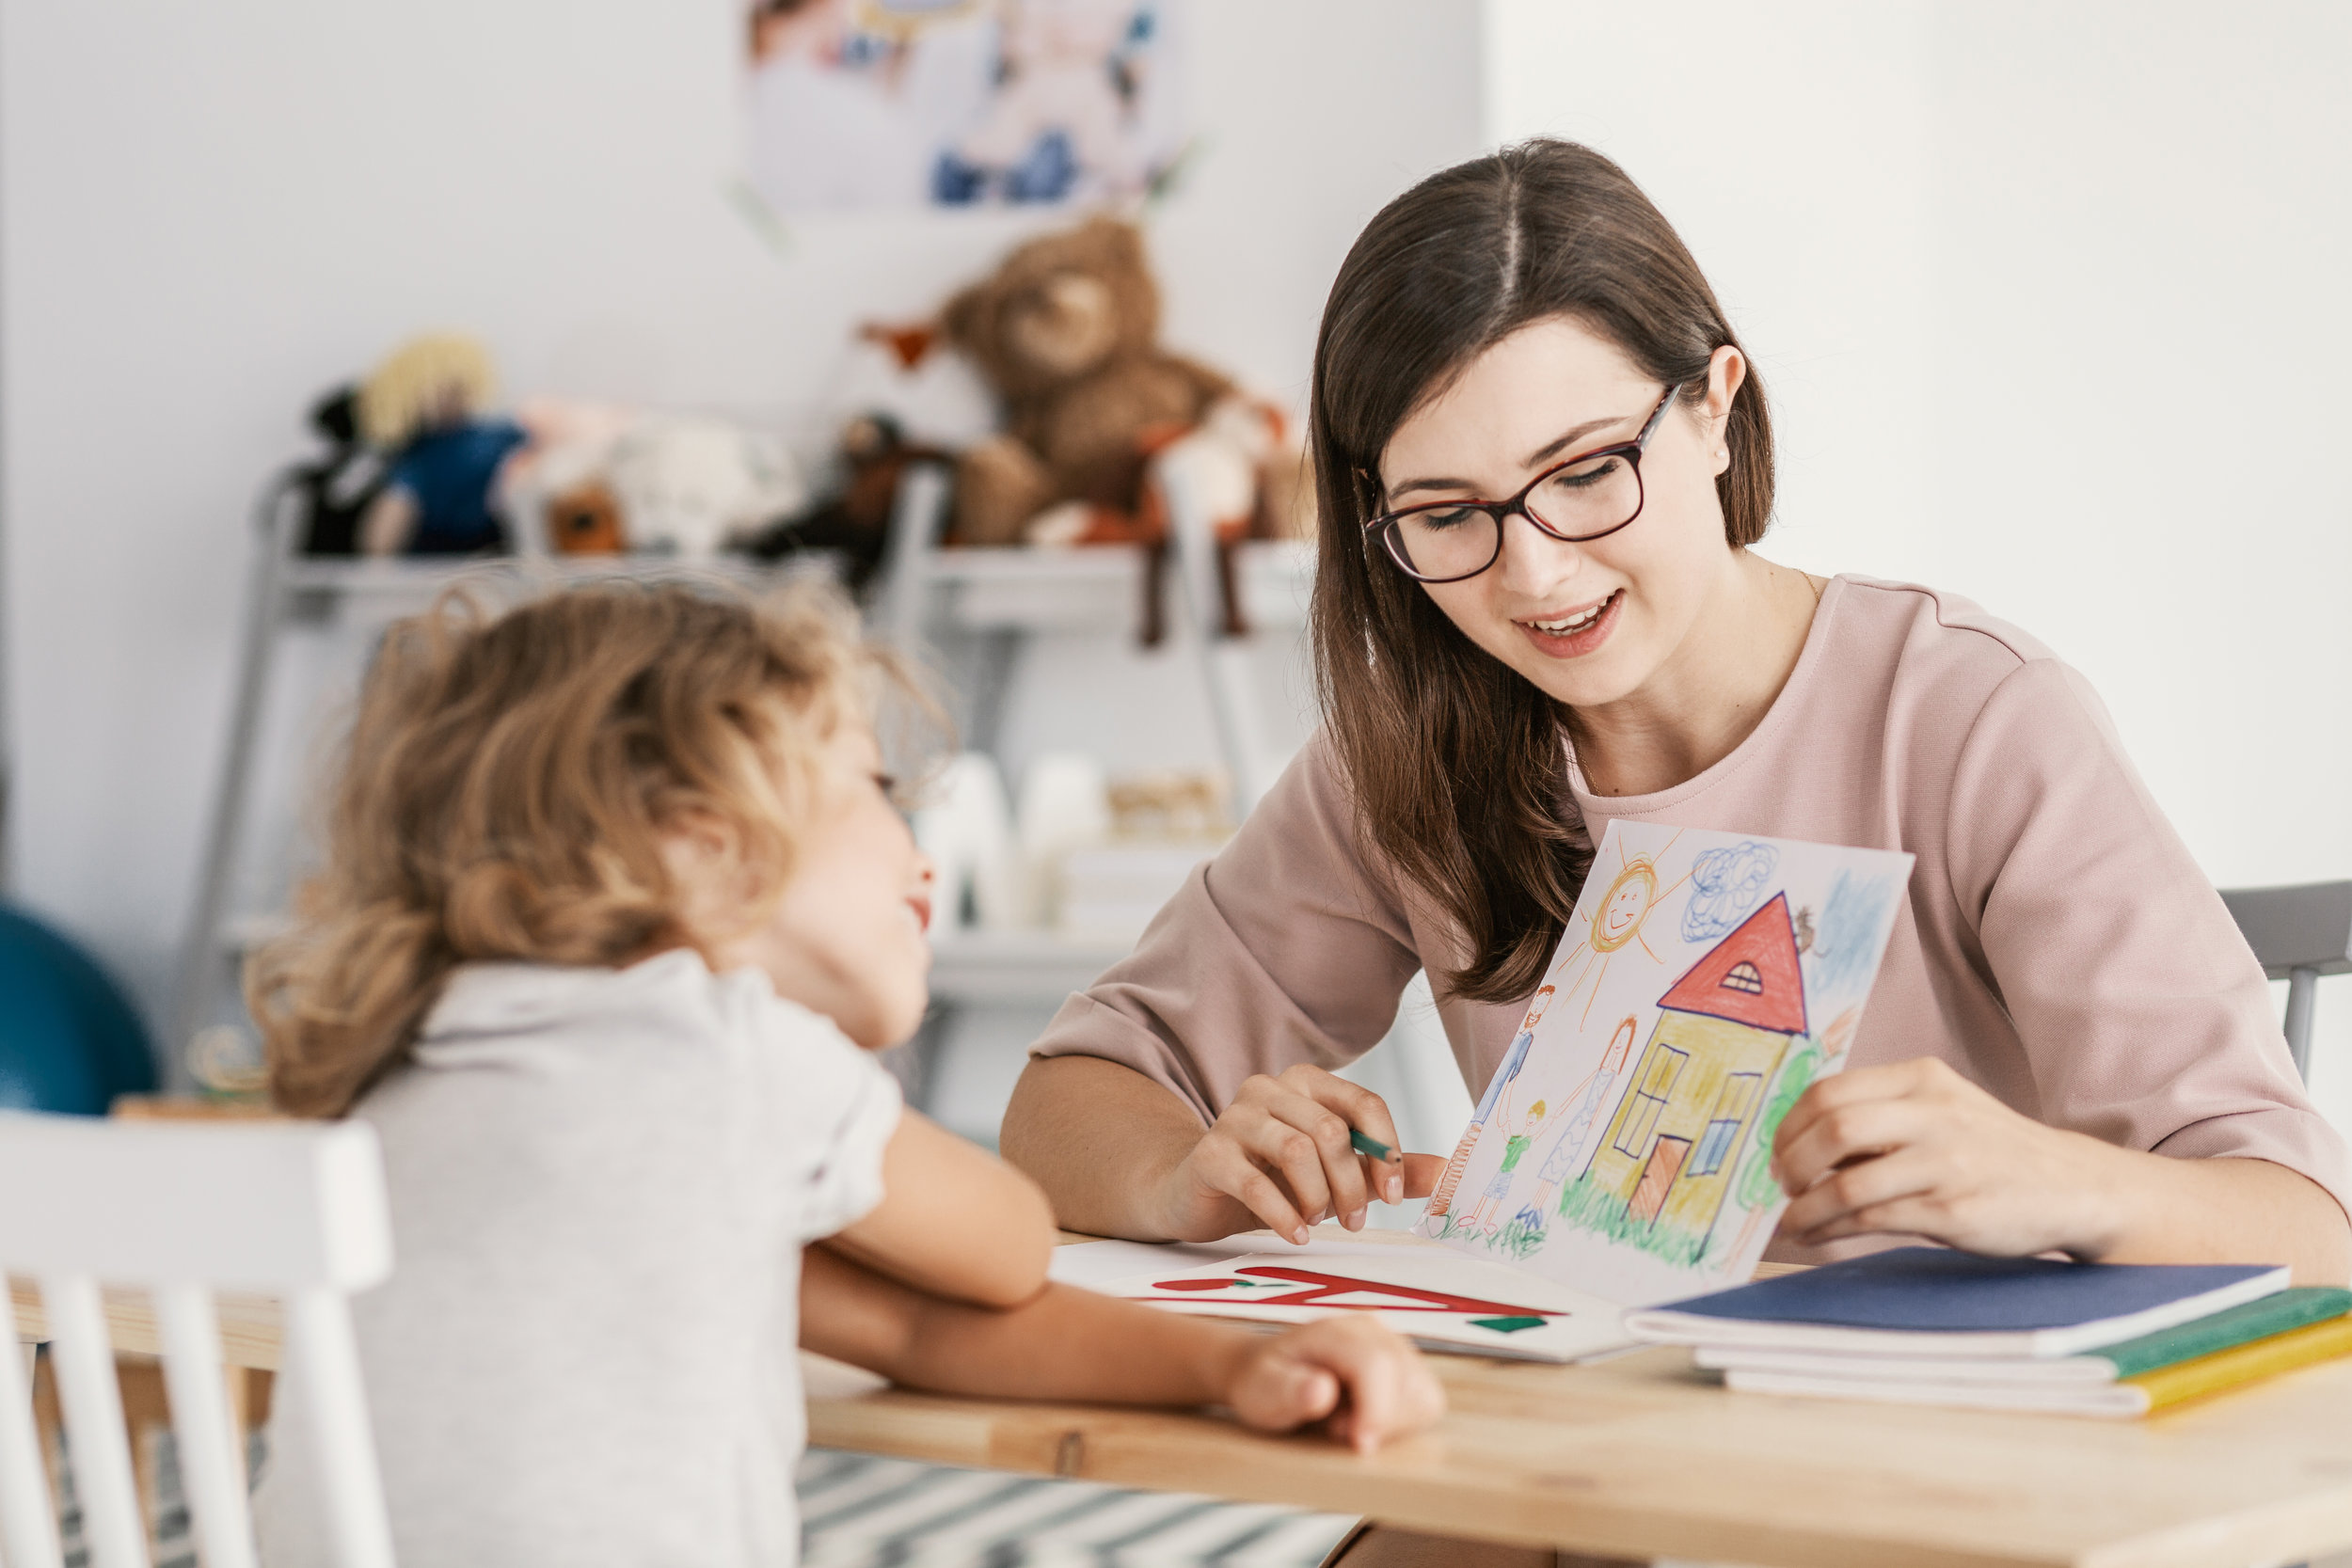 Our Process - Interested in our approach to helping your child? Click here to learn more about your first visit and our subsequent therapy plan.